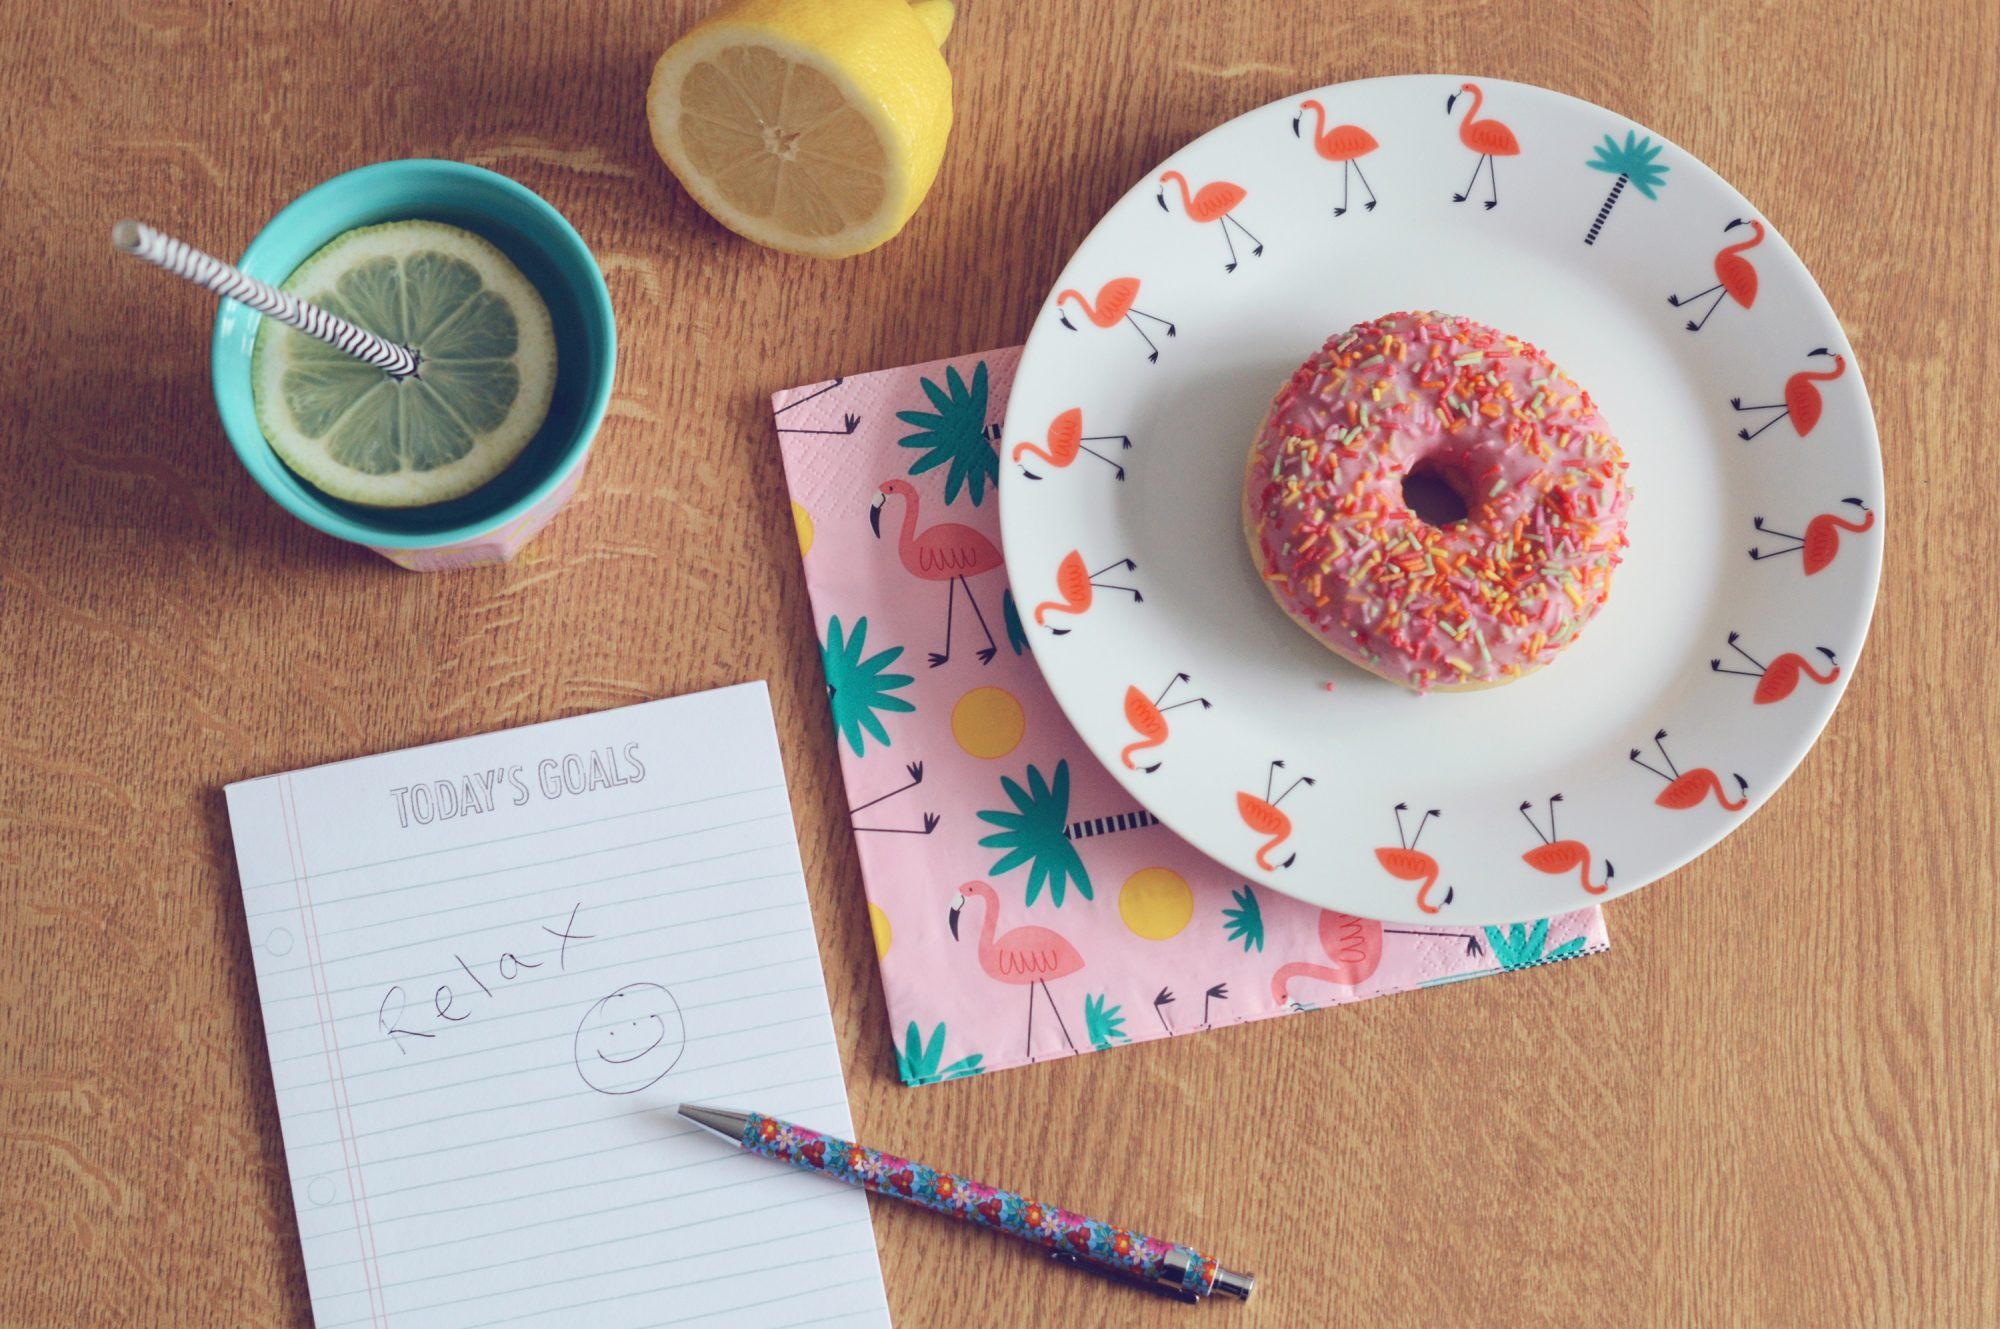 donut and note